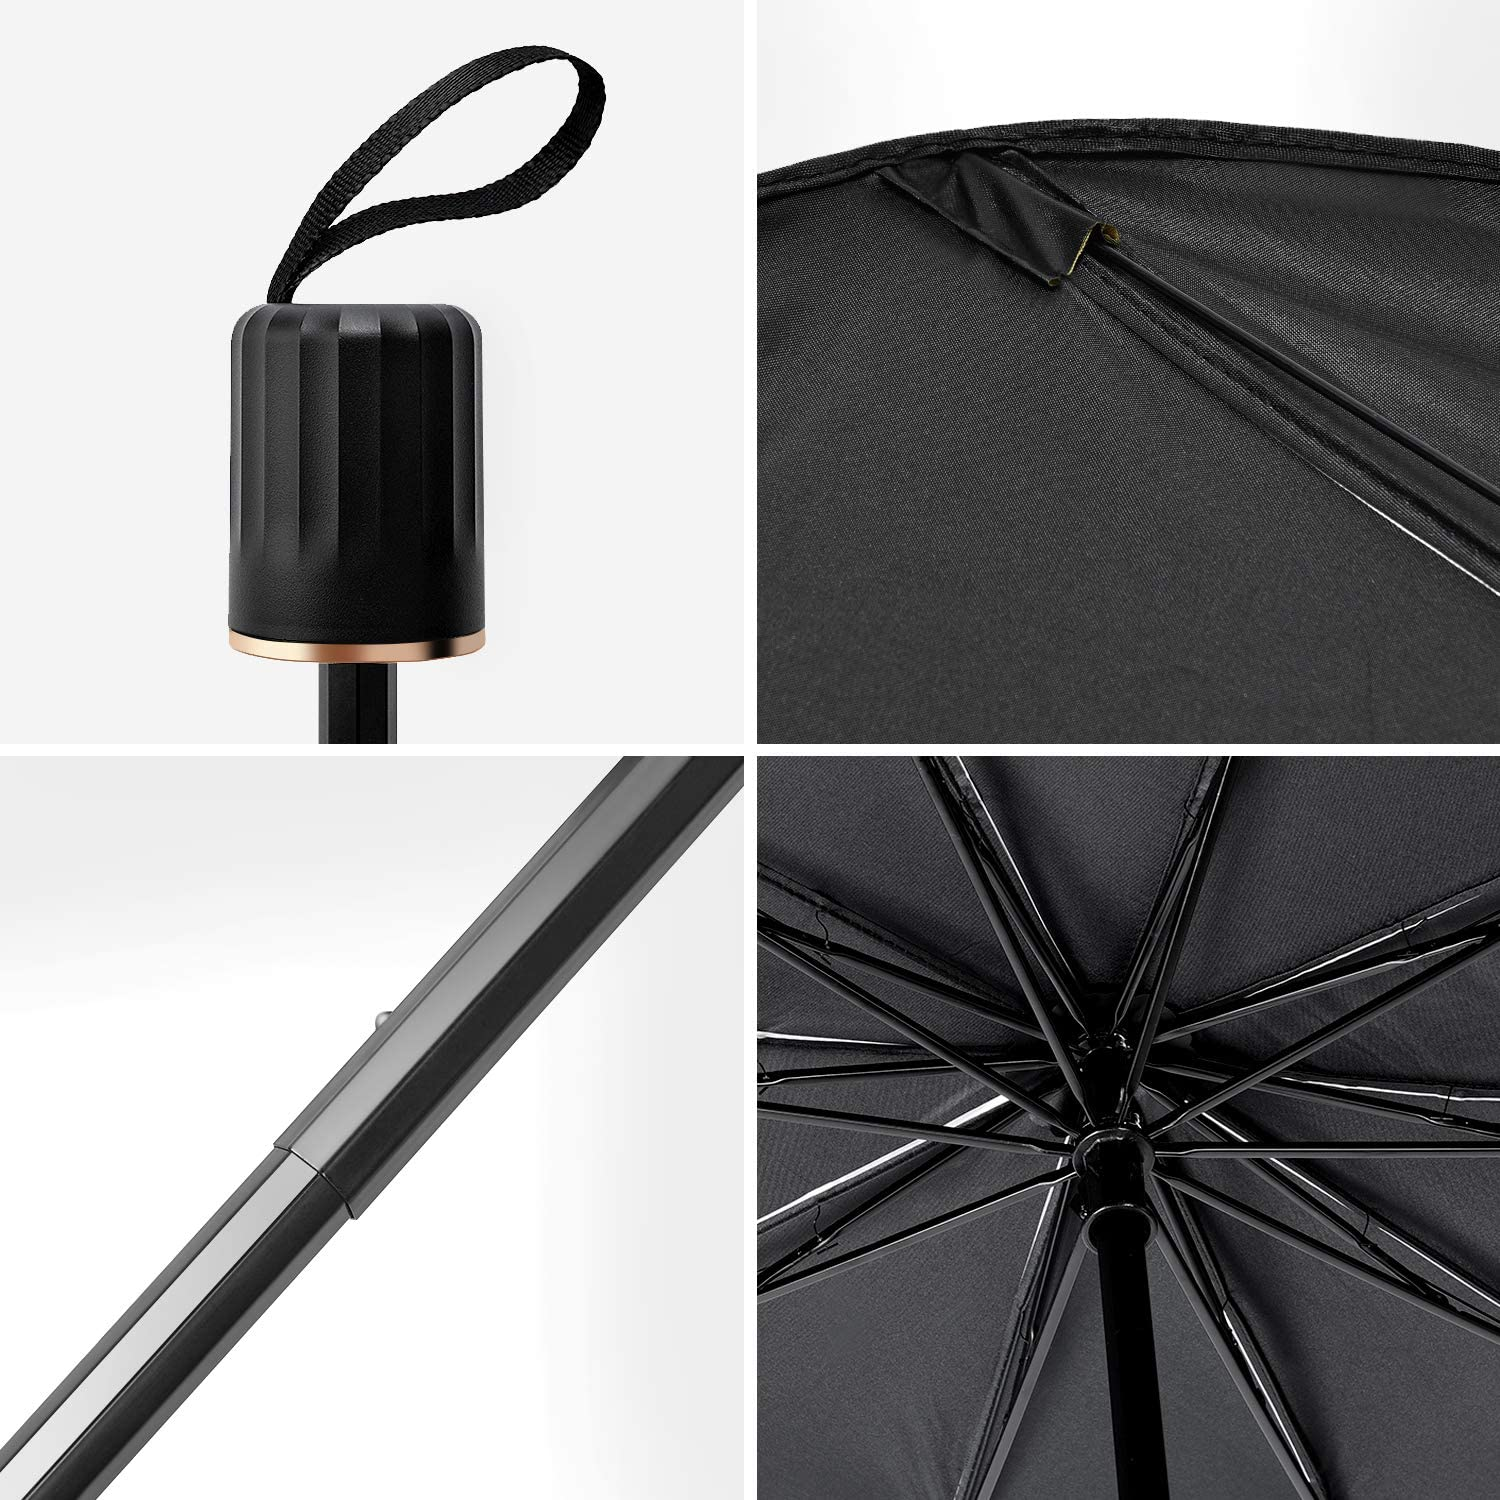 Car Windshield Sun Shade Foldable Sunshades Umbrella for Car Front Windshield Easy to Store and Use Protect Vehicle from UV Sun and Heat 31 x 57 inch Fits Windshields of Various Sizes